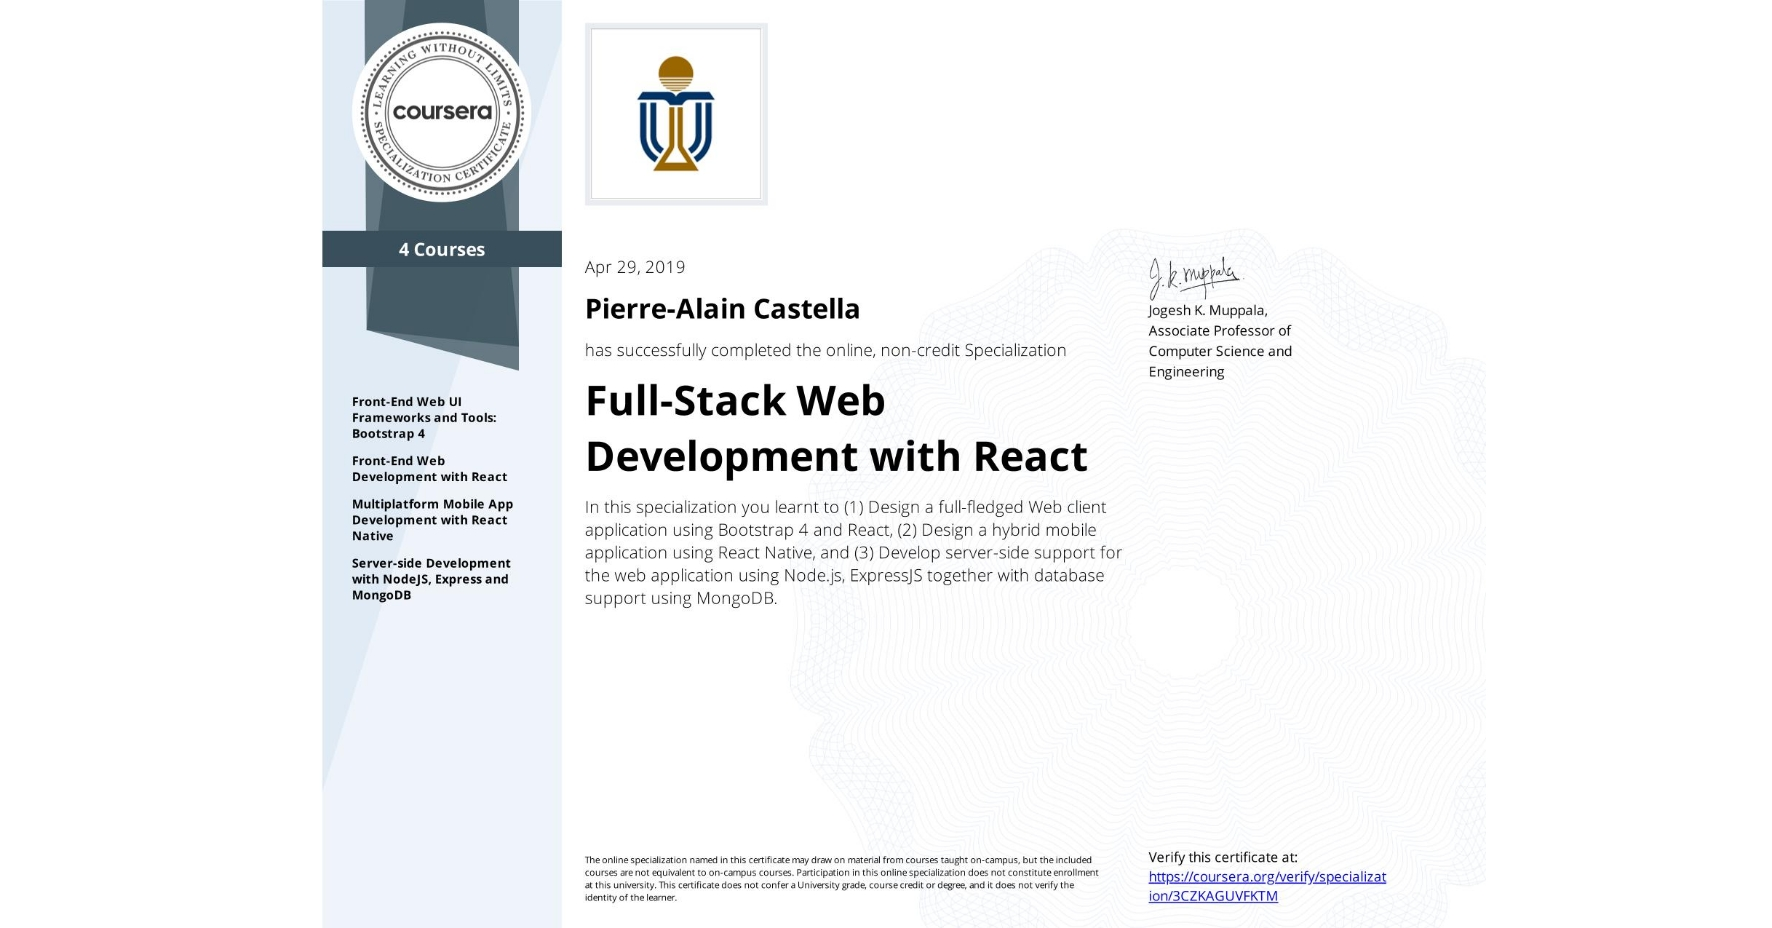 View certificate for Pierre-Alain Castella, Full-Stack Web Development with React, offered through Coursera. In this specialization you learnt to (1) Design a full-fledged Web client application using Bootstrap 4 and React, (2) Design a hybrid mobile application using React Native, and (3) Develop server-side support for the web application using Node.js, ExpressJS together with database support using MongoDB.